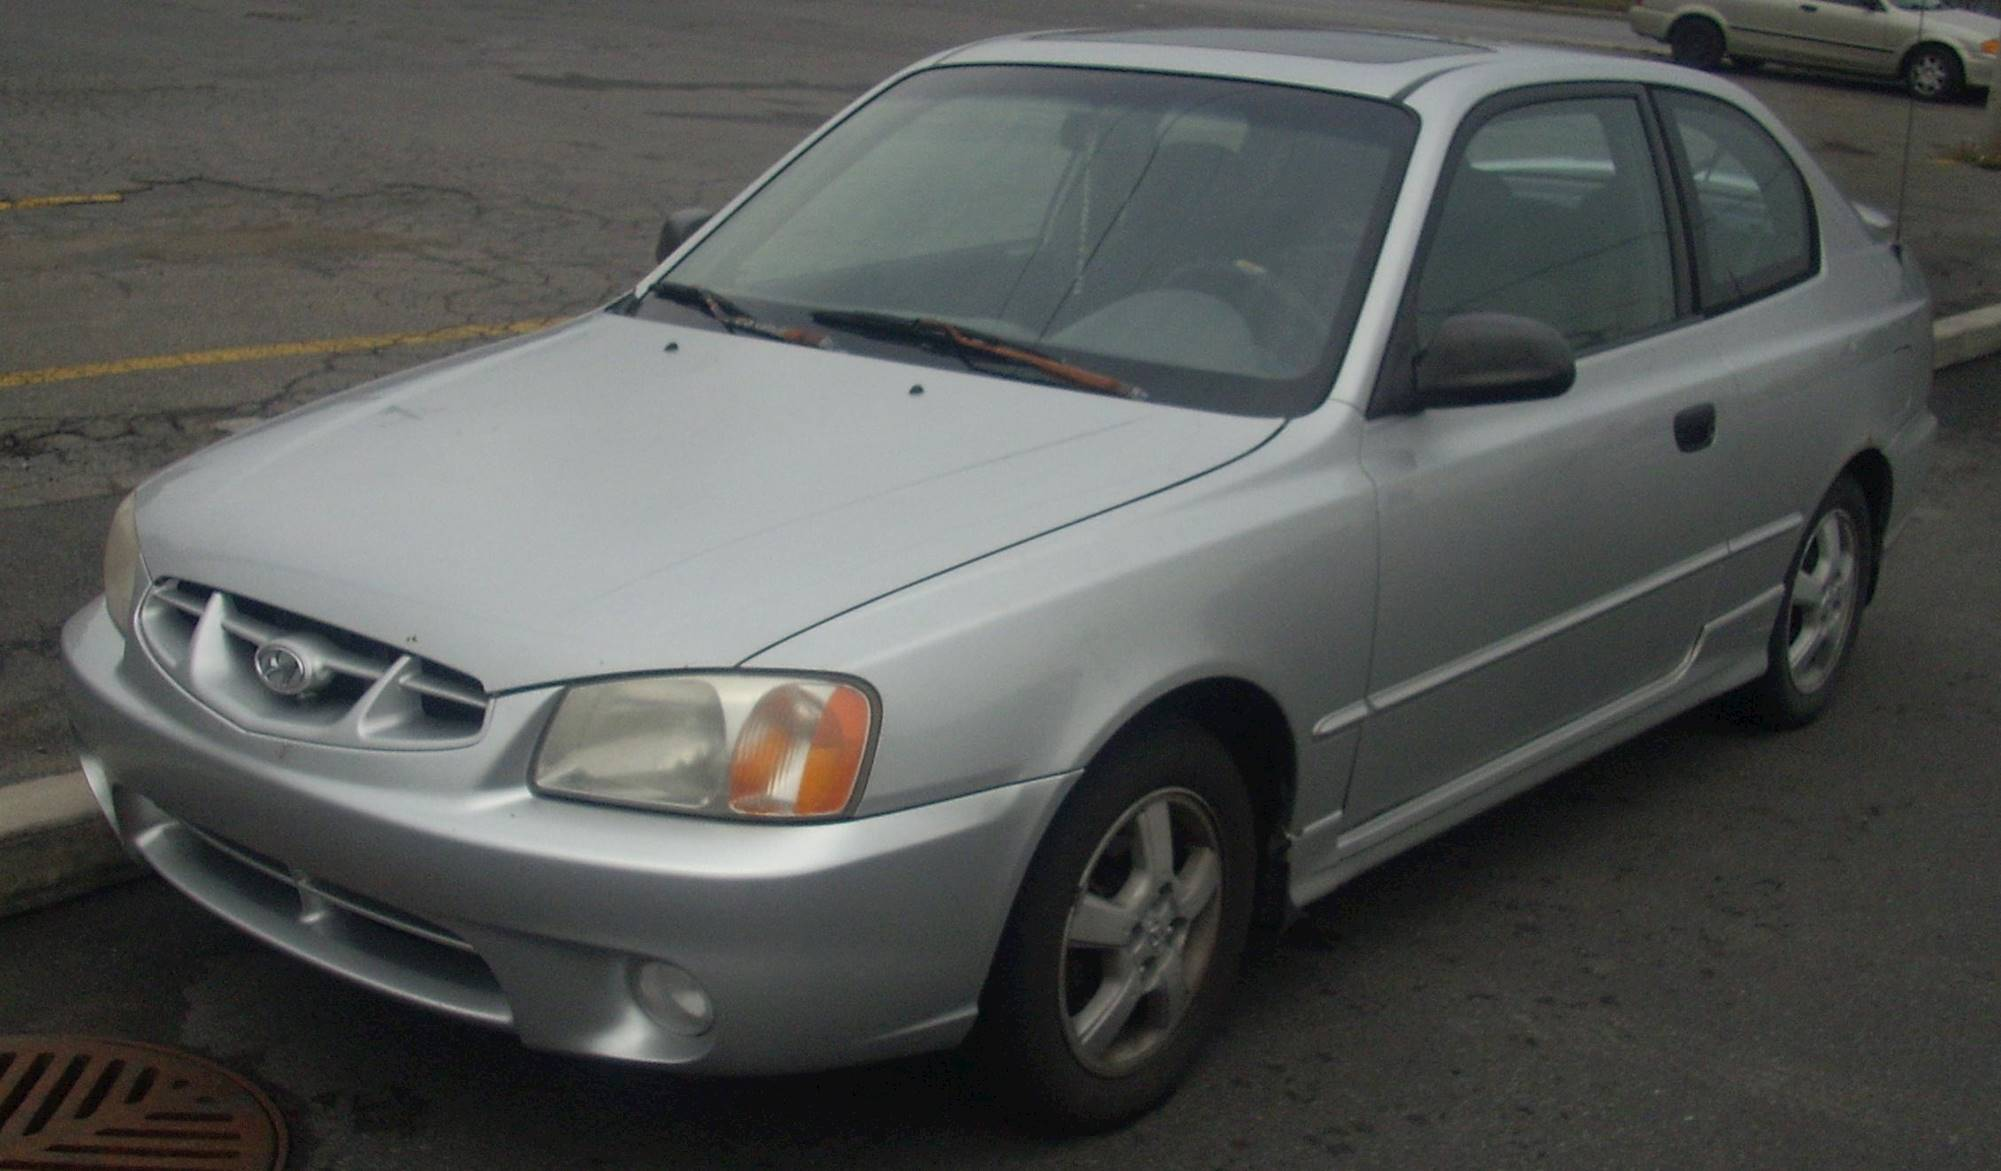 2002 Hyundai Accent Gs 2dr Hatchback 1 6l Auto Rh Carspecs Us 2002 Hyundai  Accent Manual